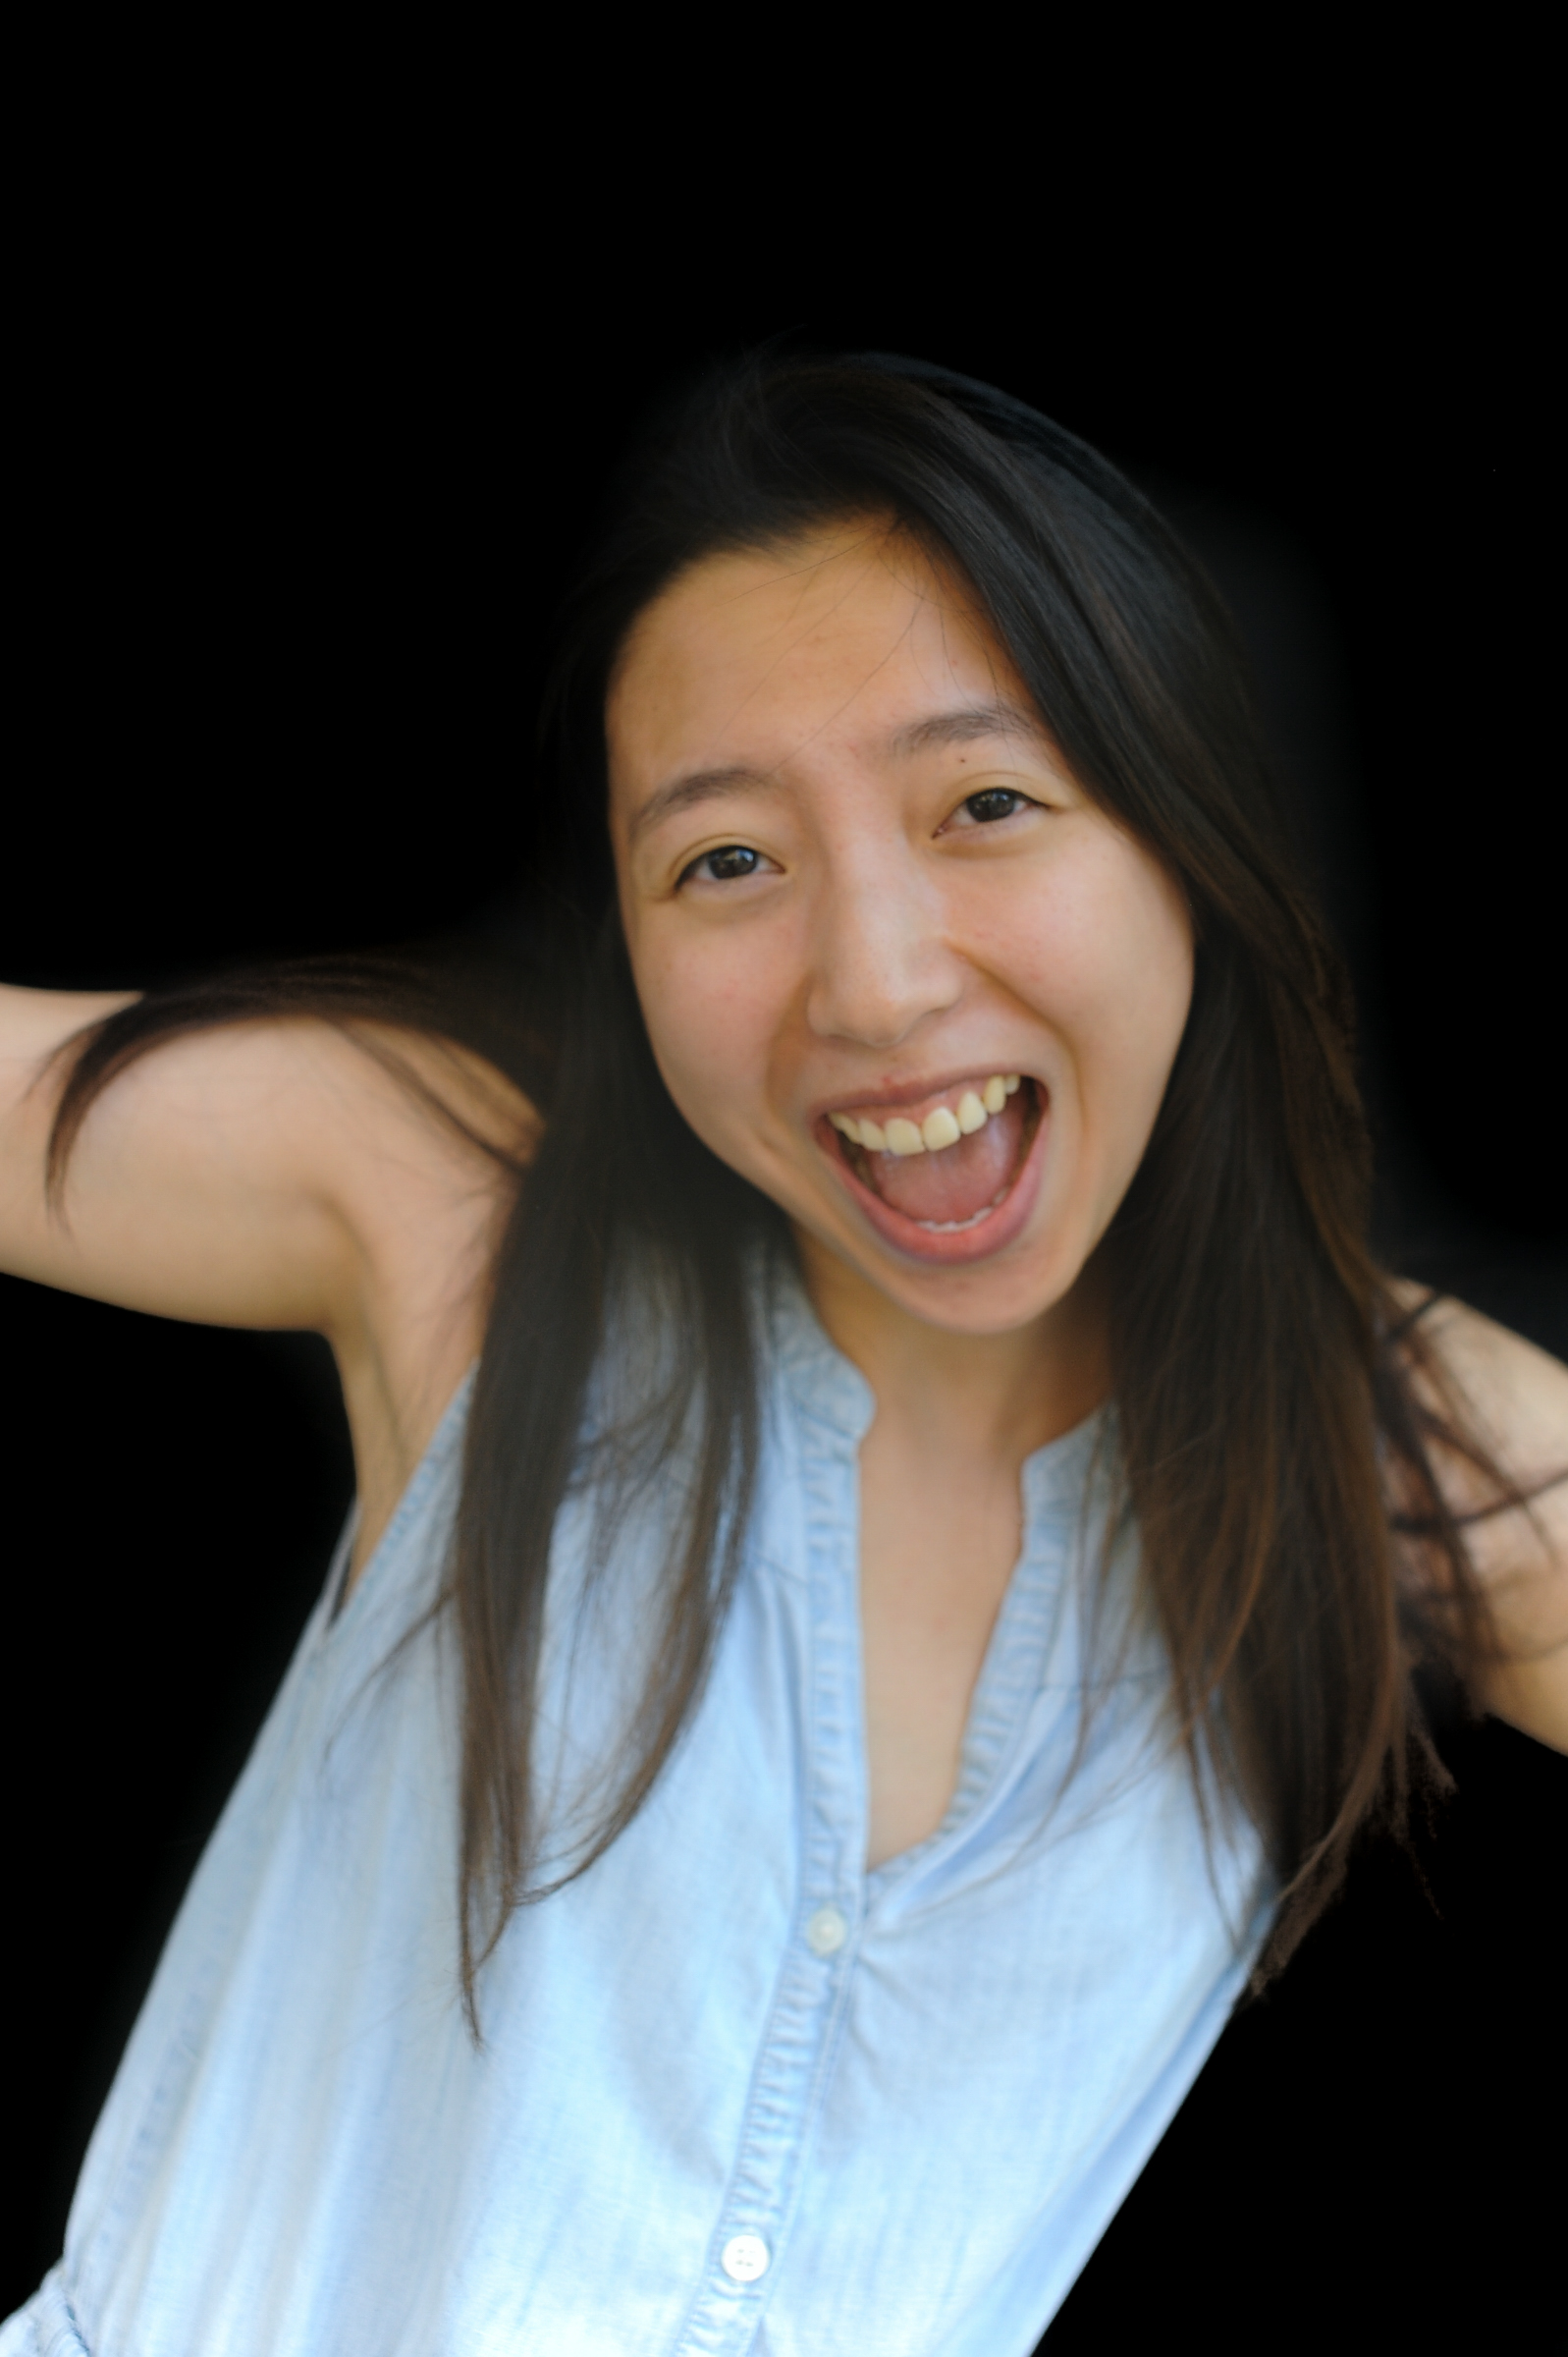 Name: Andrea Lo